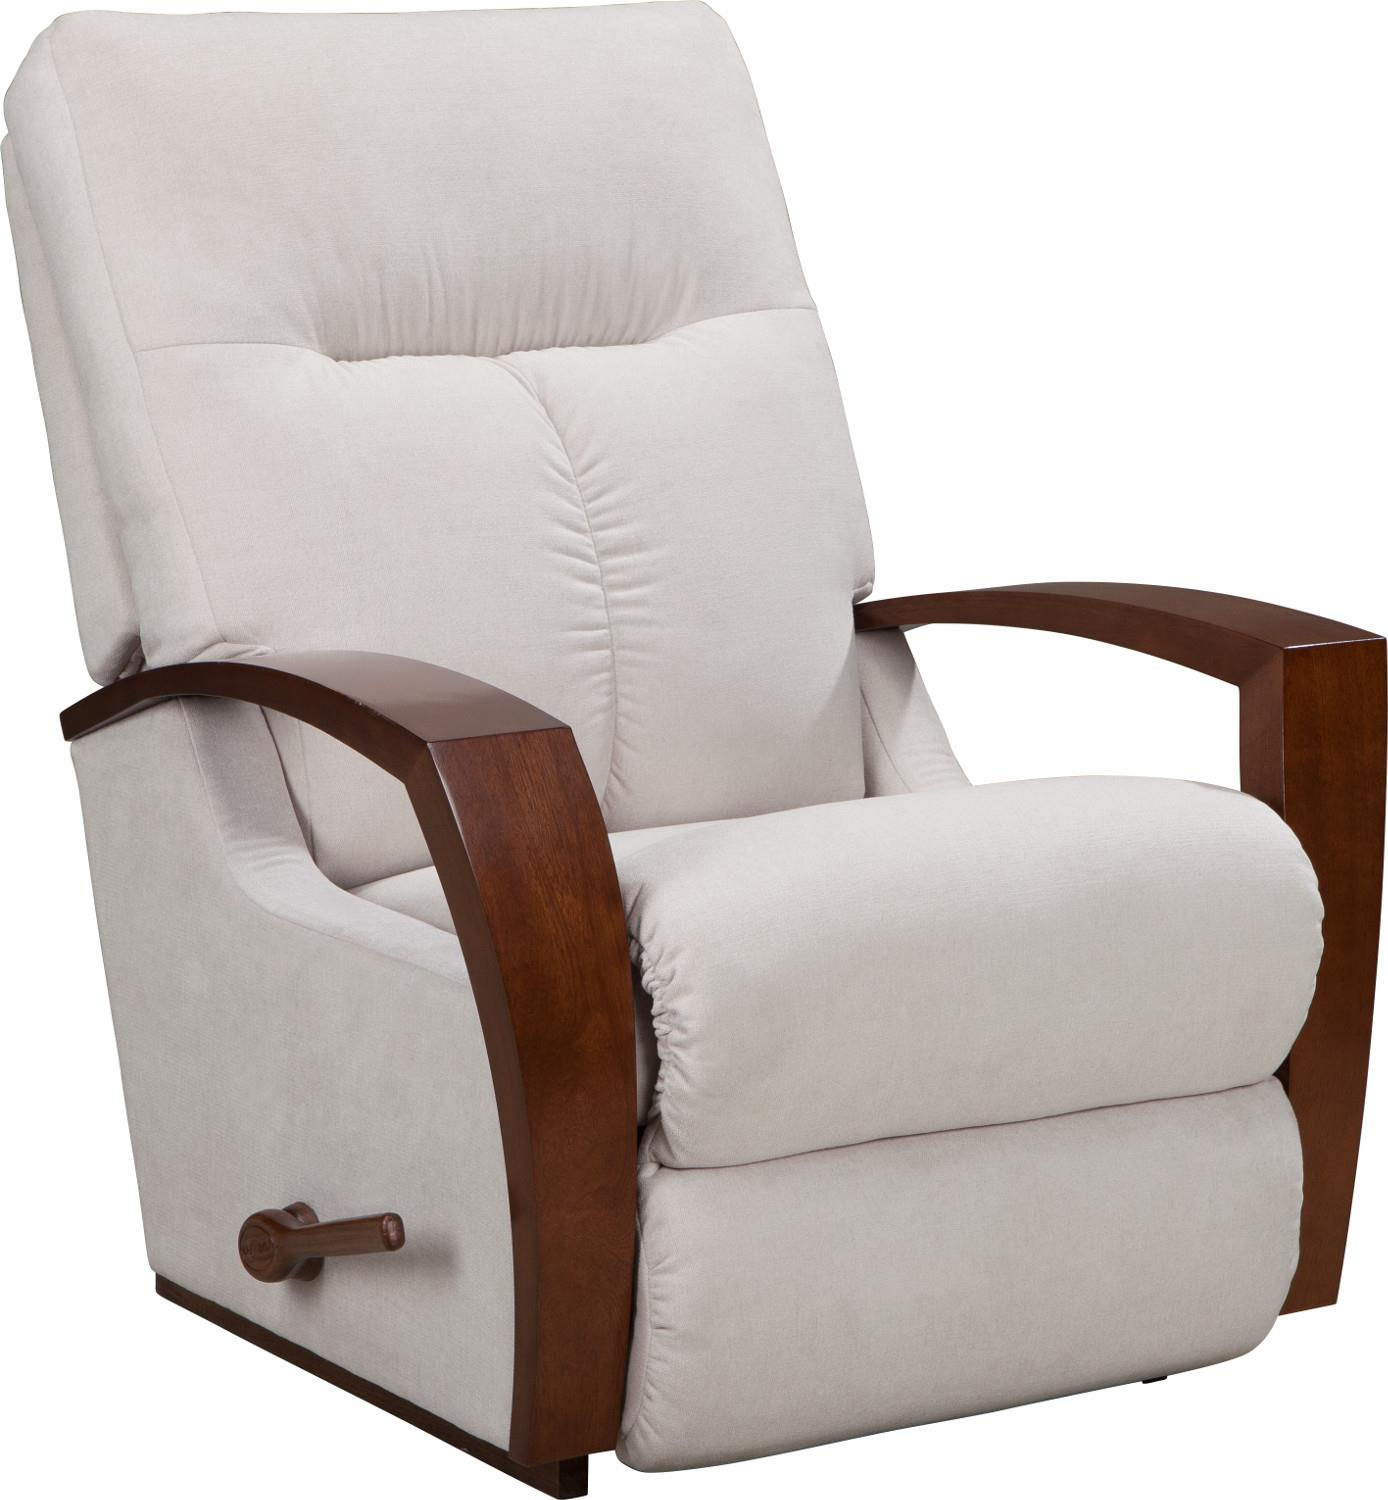 Maxx RECLINA-ROCKER® Recliner. by La-Z-Boy  sc 1 st  Wolf Furniture & Maxx RECLINA-ROCKER® Recliner by La-Z-Boy | Wolf and Gardiner Wolf ... islam-shia.org